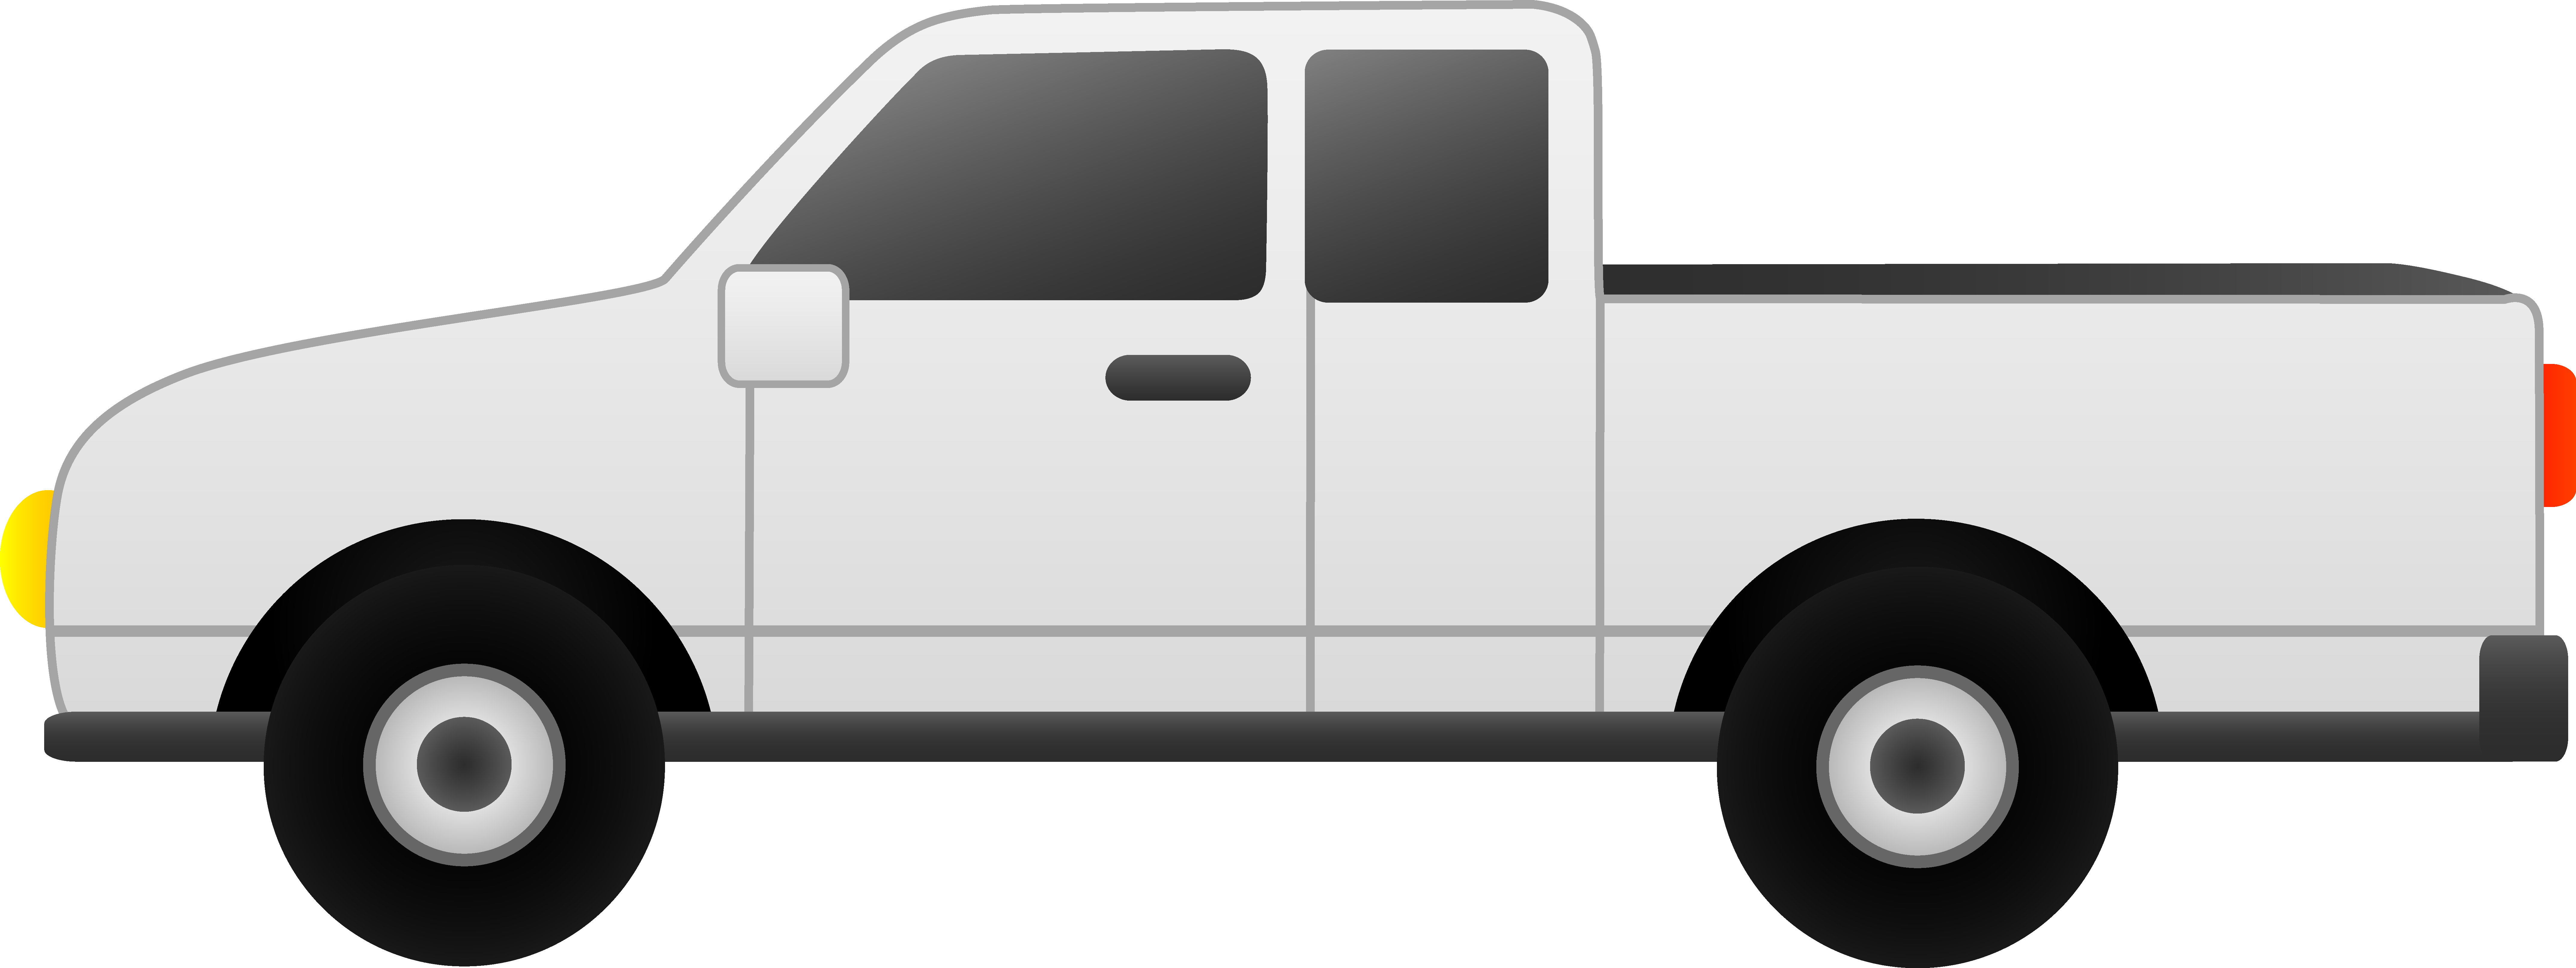 Delivery Truck Clipart - Cliparts.co